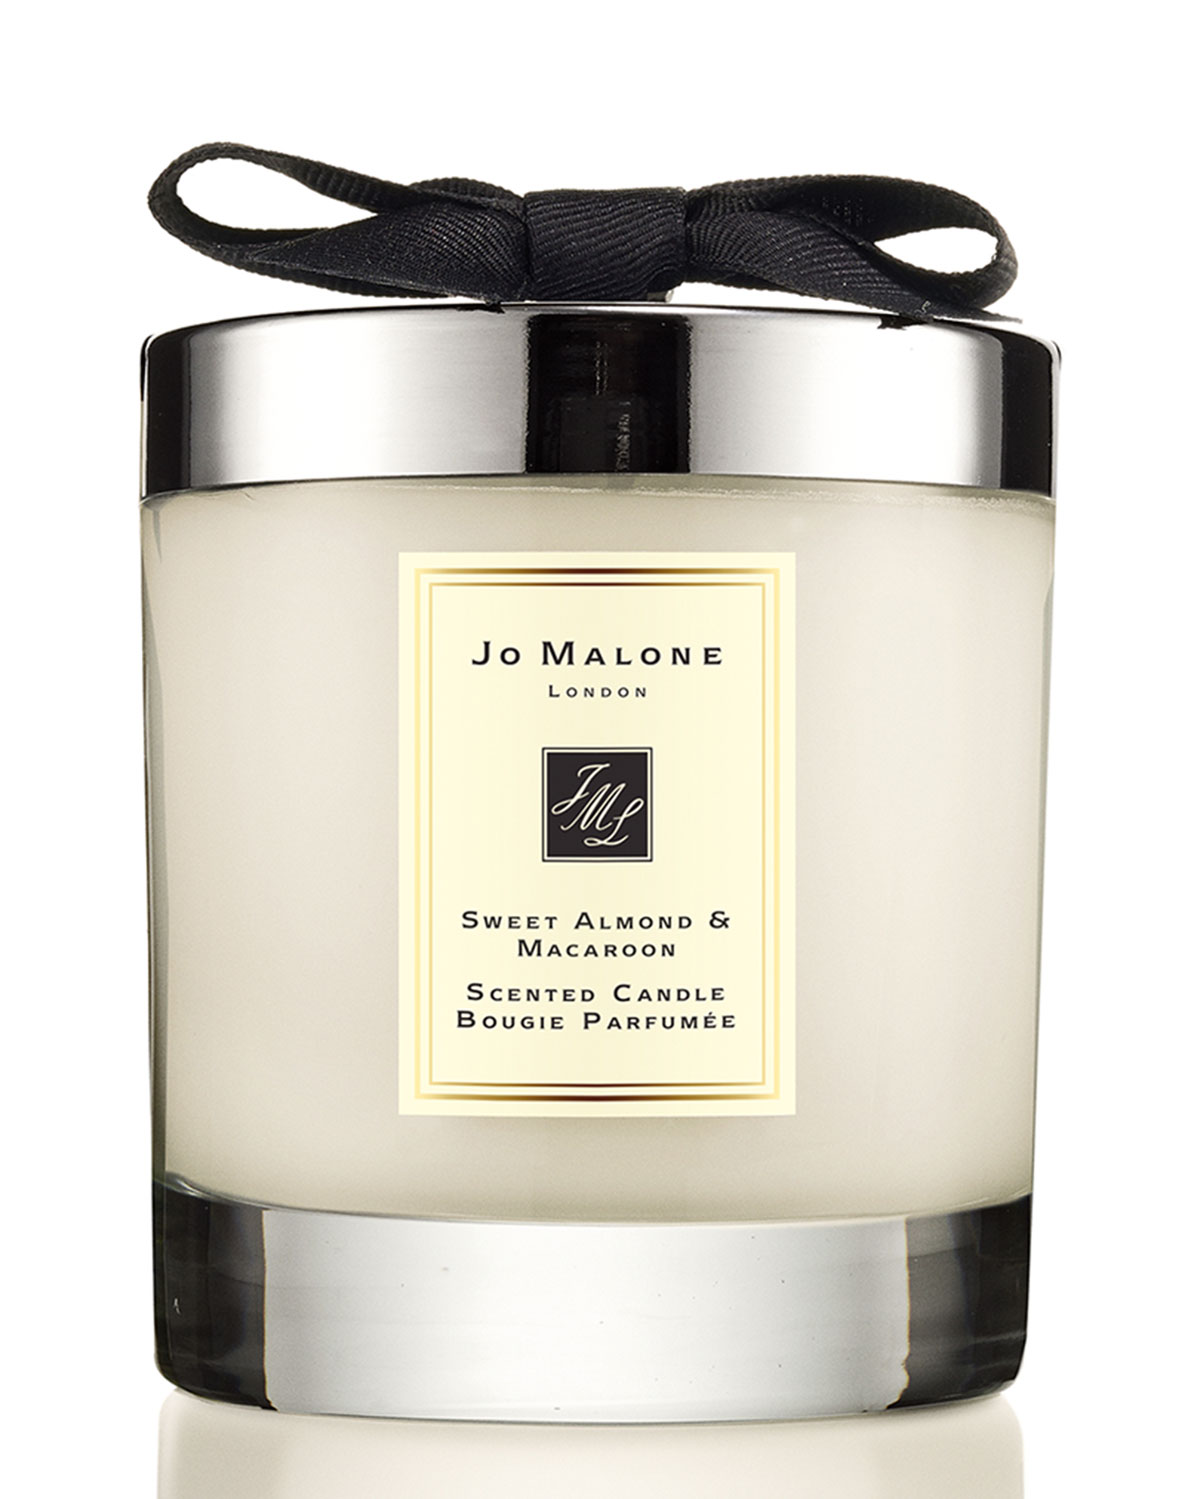 Jo Malone London Sweet Almond & Macaroon Scented Home Candle, 7 Oz